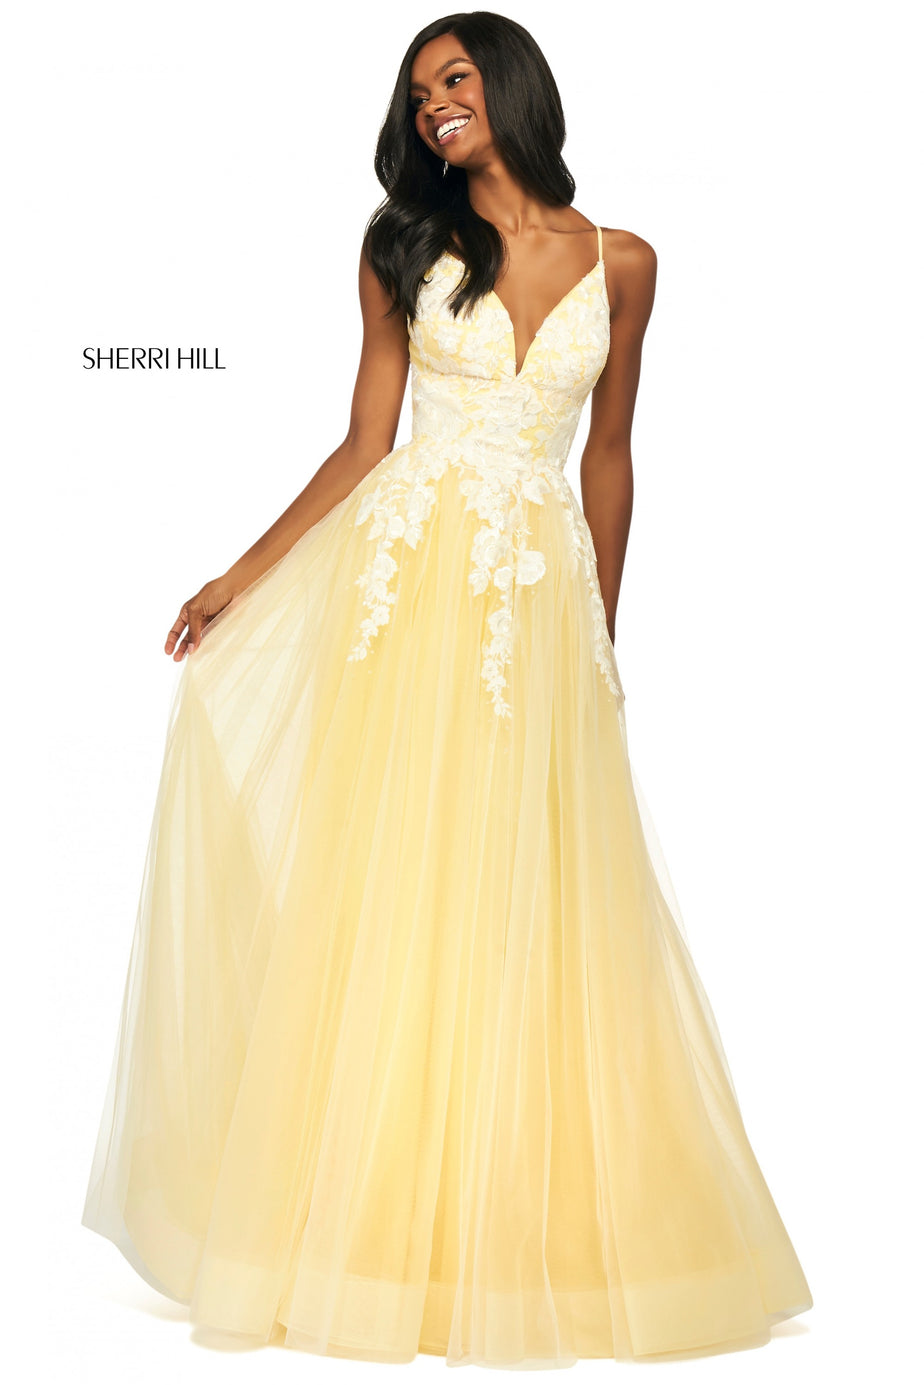 |Sherri Hill 53730 Prom Dress